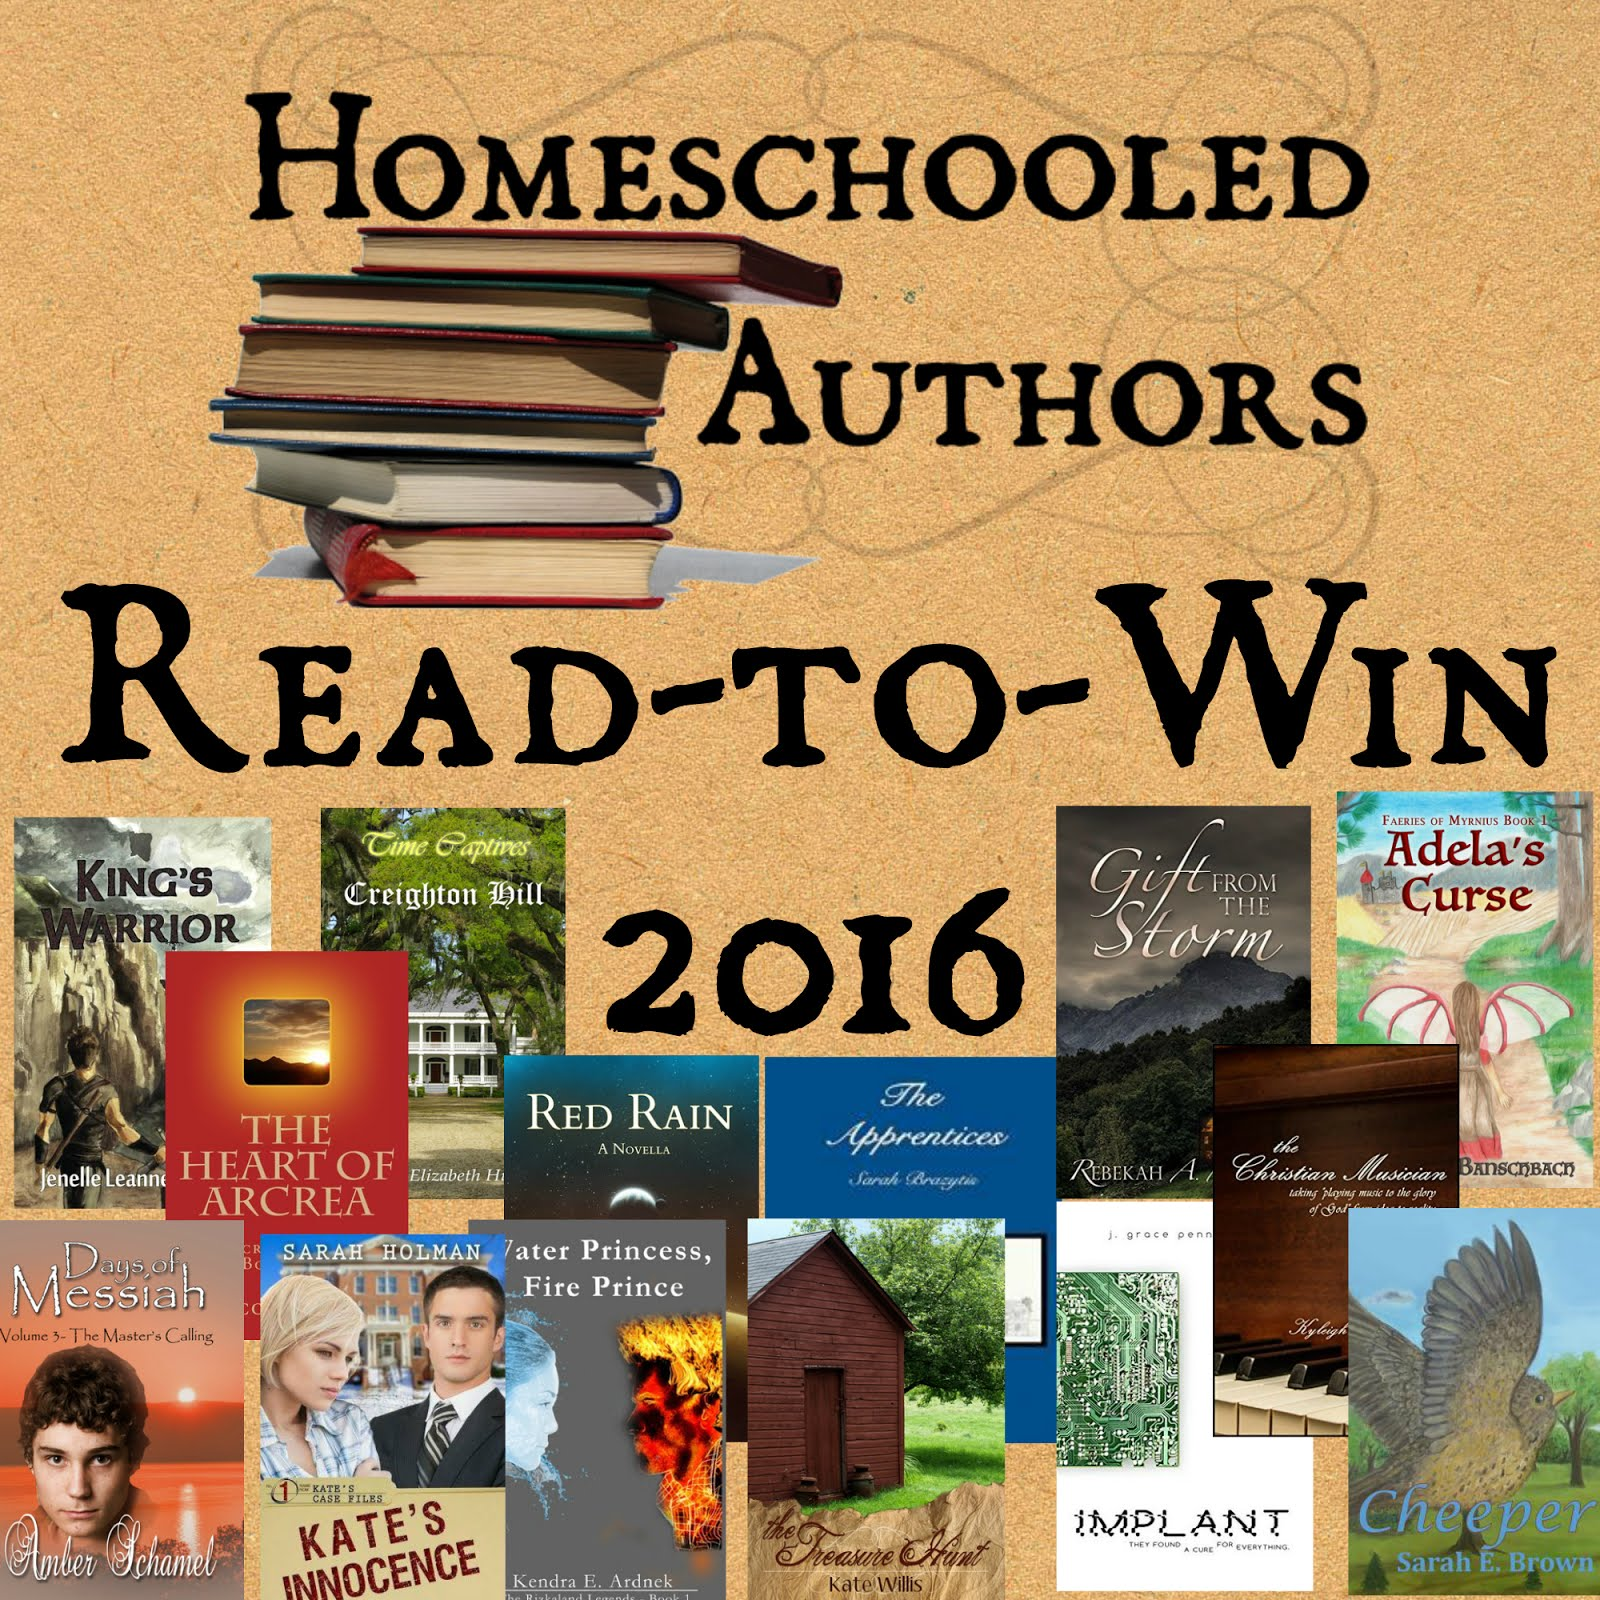 Homeschooled Authors Read-to-Win